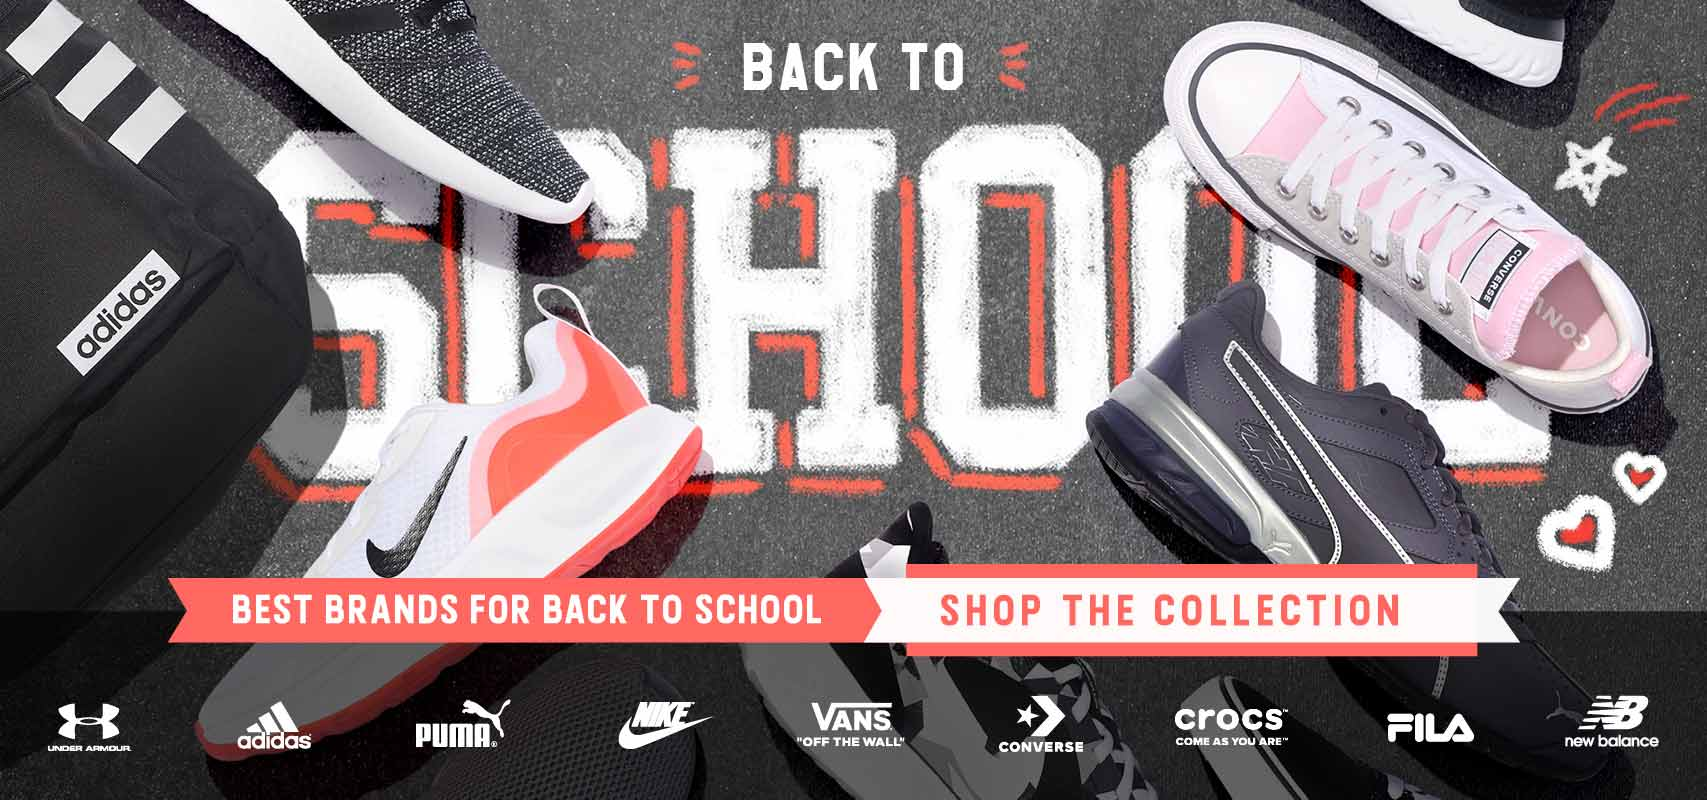 On-trend athletic shoes for Back to School